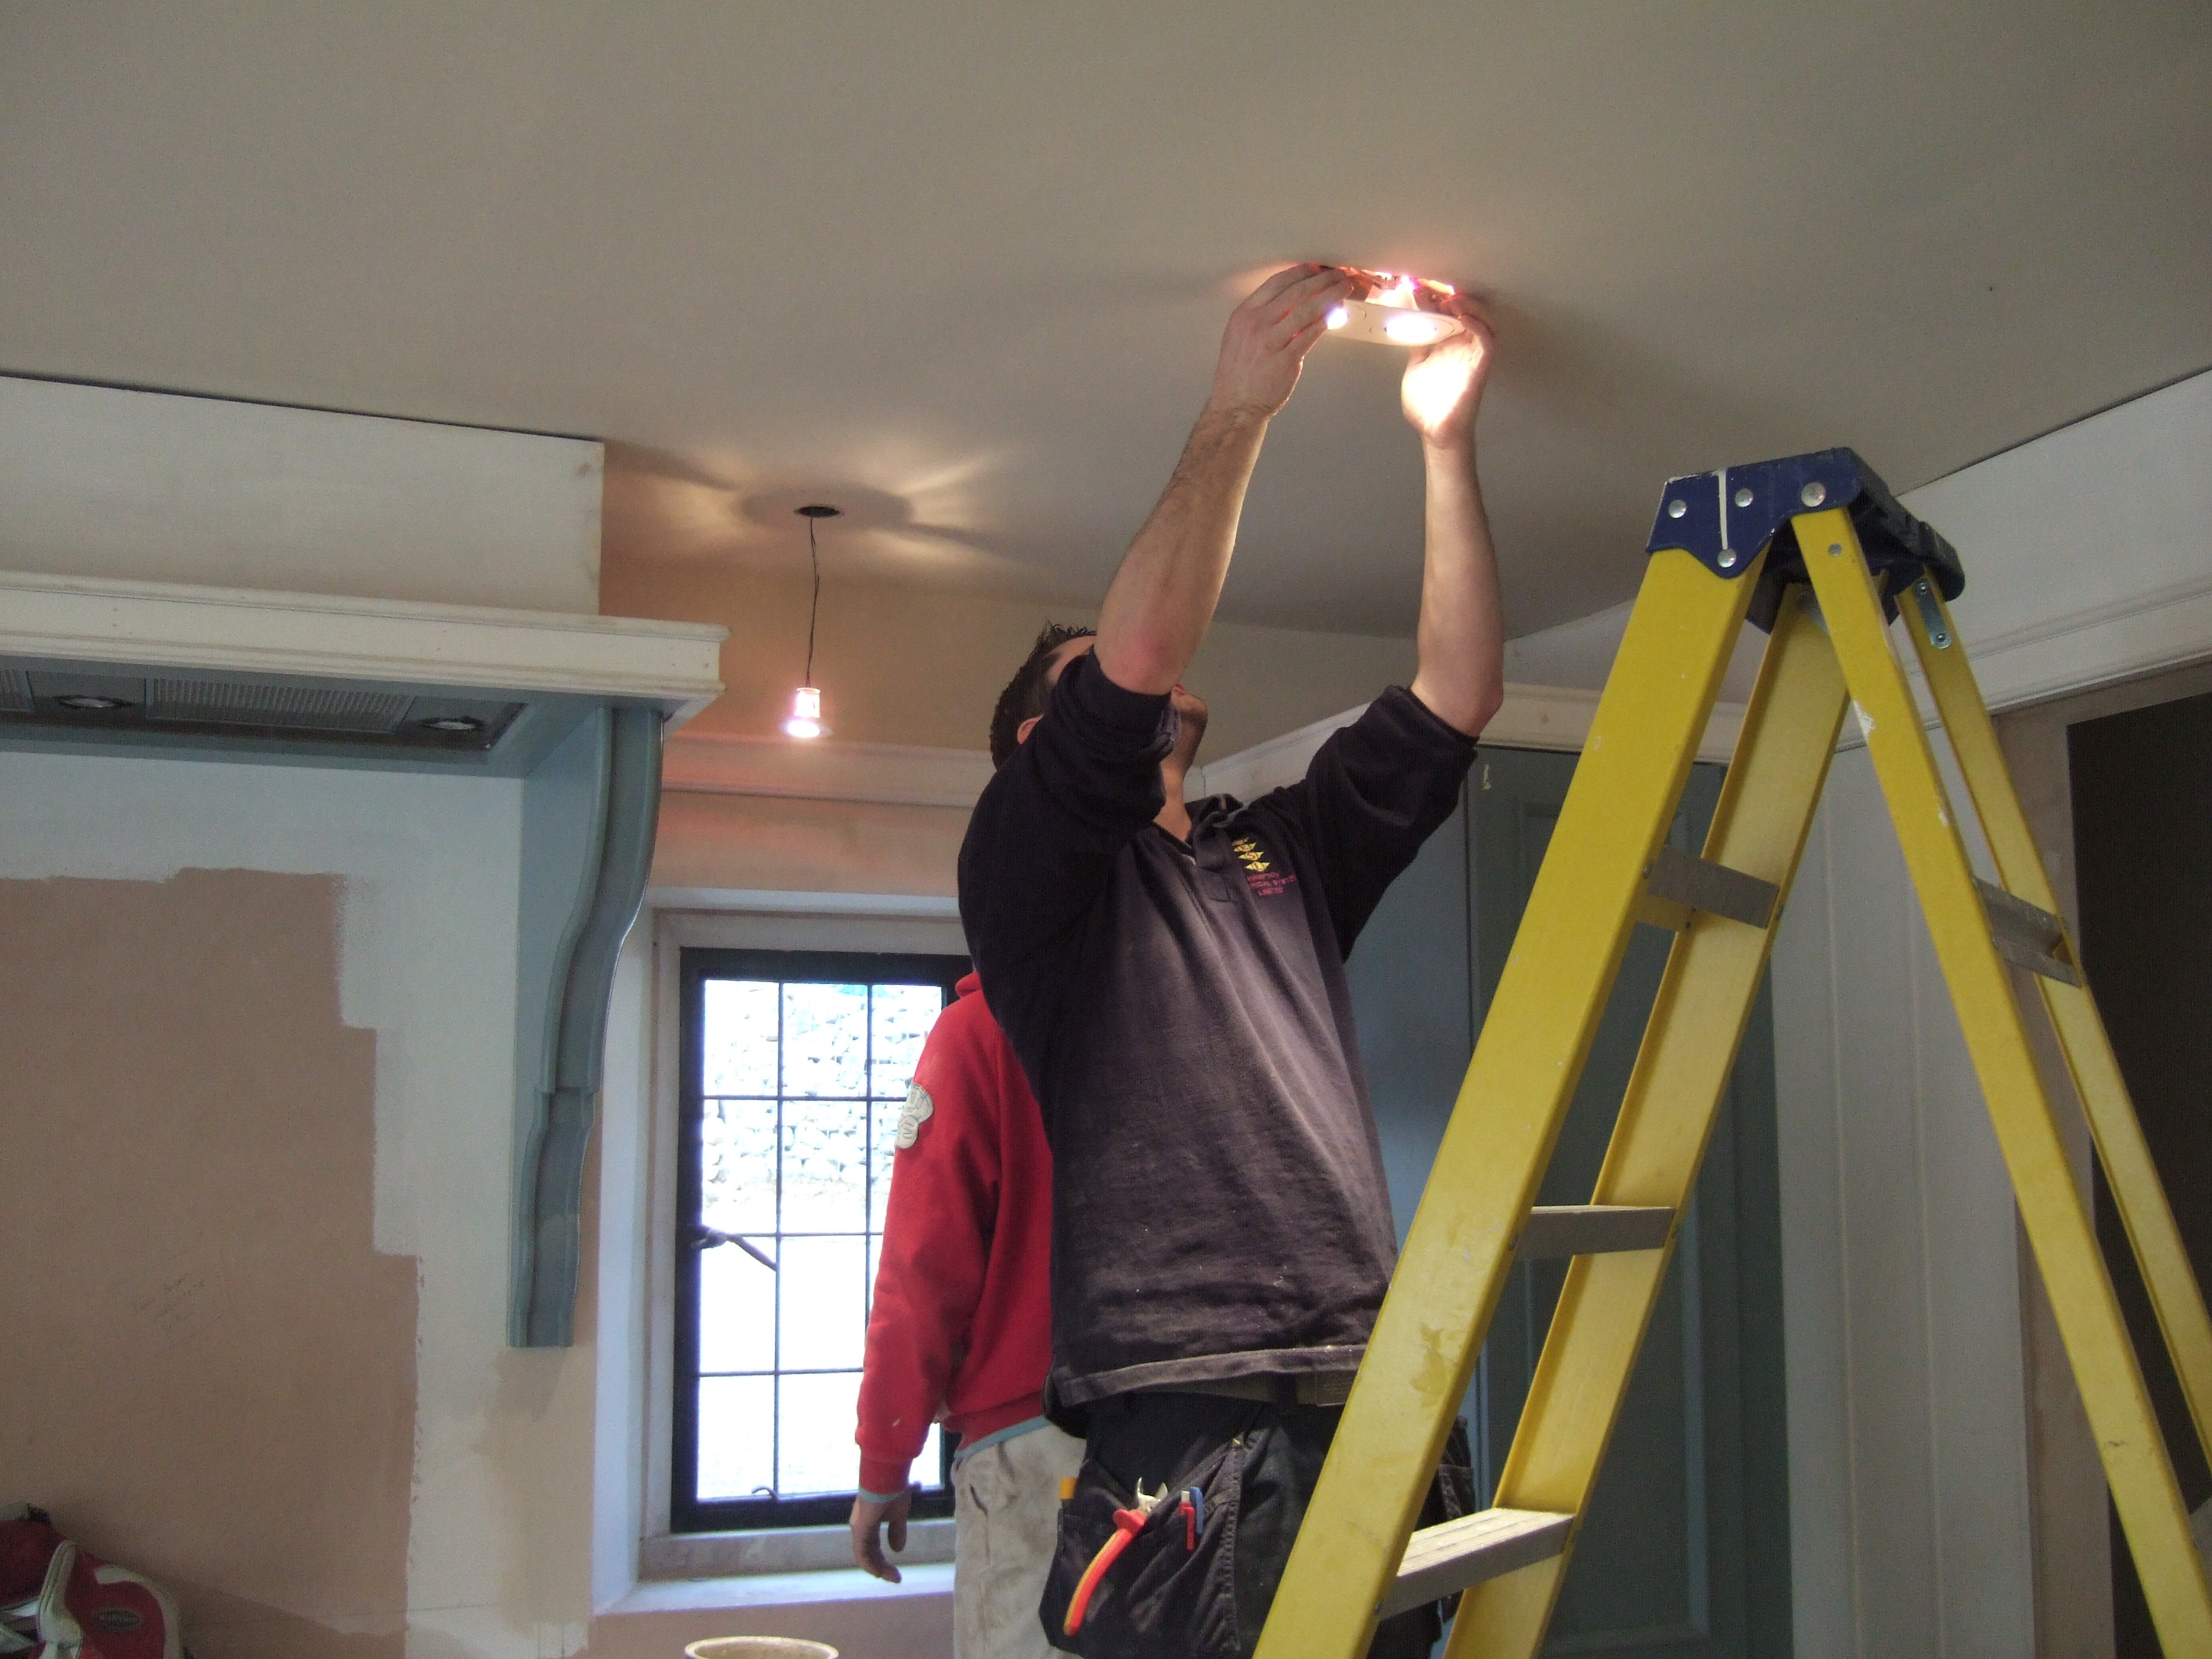 domestic lighting by Hampton Electrical Systems Ltd, Stroud, Gloucestershire